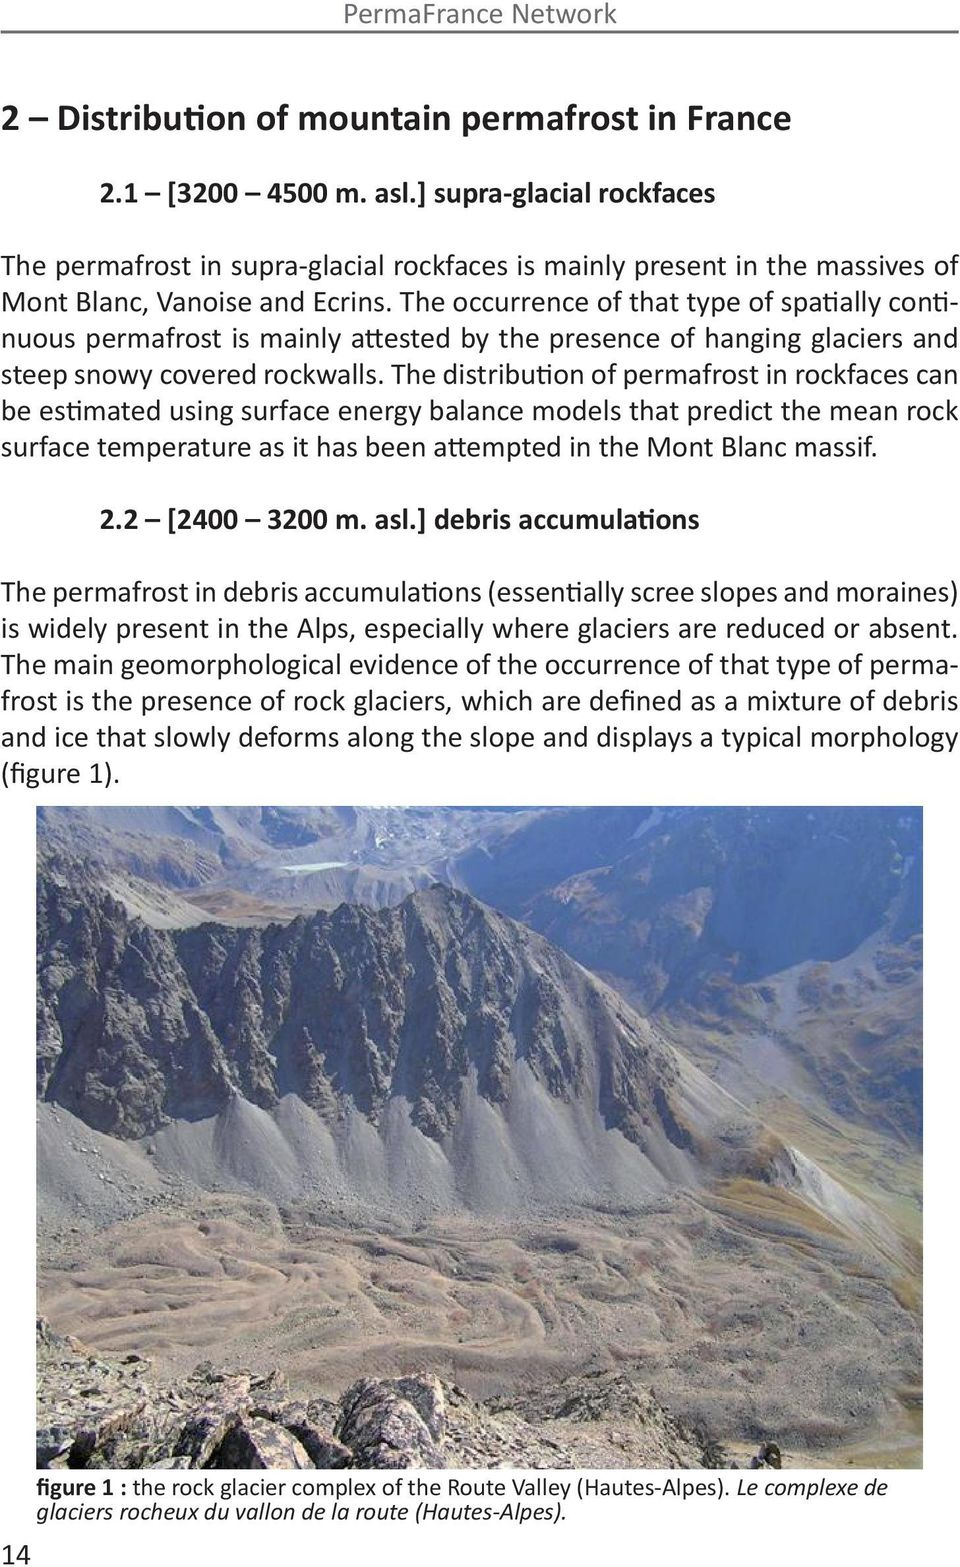 The occurrence of that type of spatially continuous permafrost is mainly attested by the presence of hanging glaciers and steep snowy covered rockwalls.